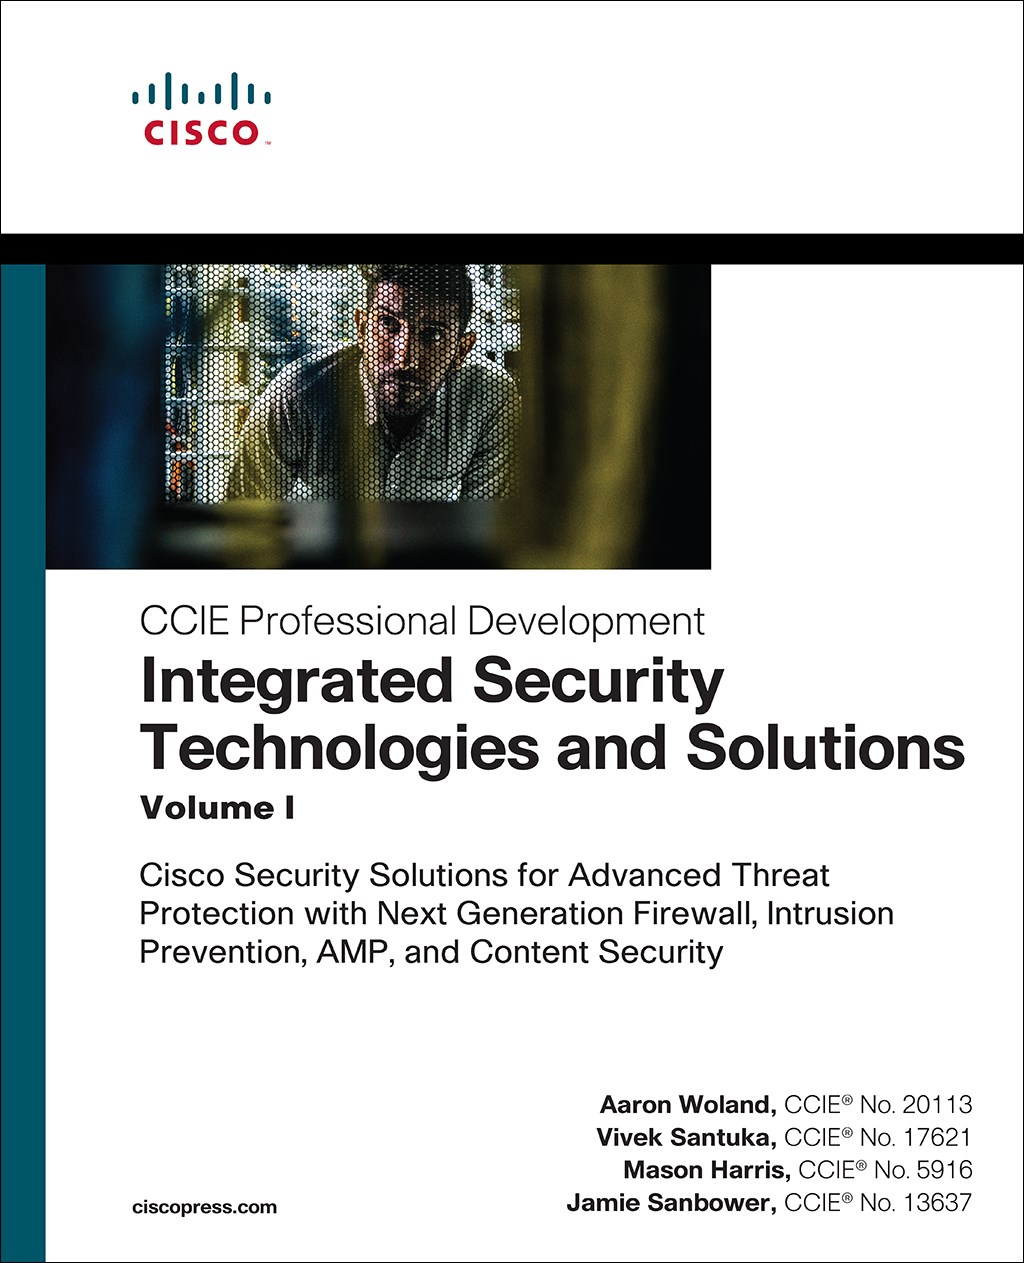 Integrated Security Technologies and Solutions - Volume I: Cisco Security Solutions for Advanced Threat Protection with Next Generation Firewall, Intrusion Prevention, AMP, and Content Security